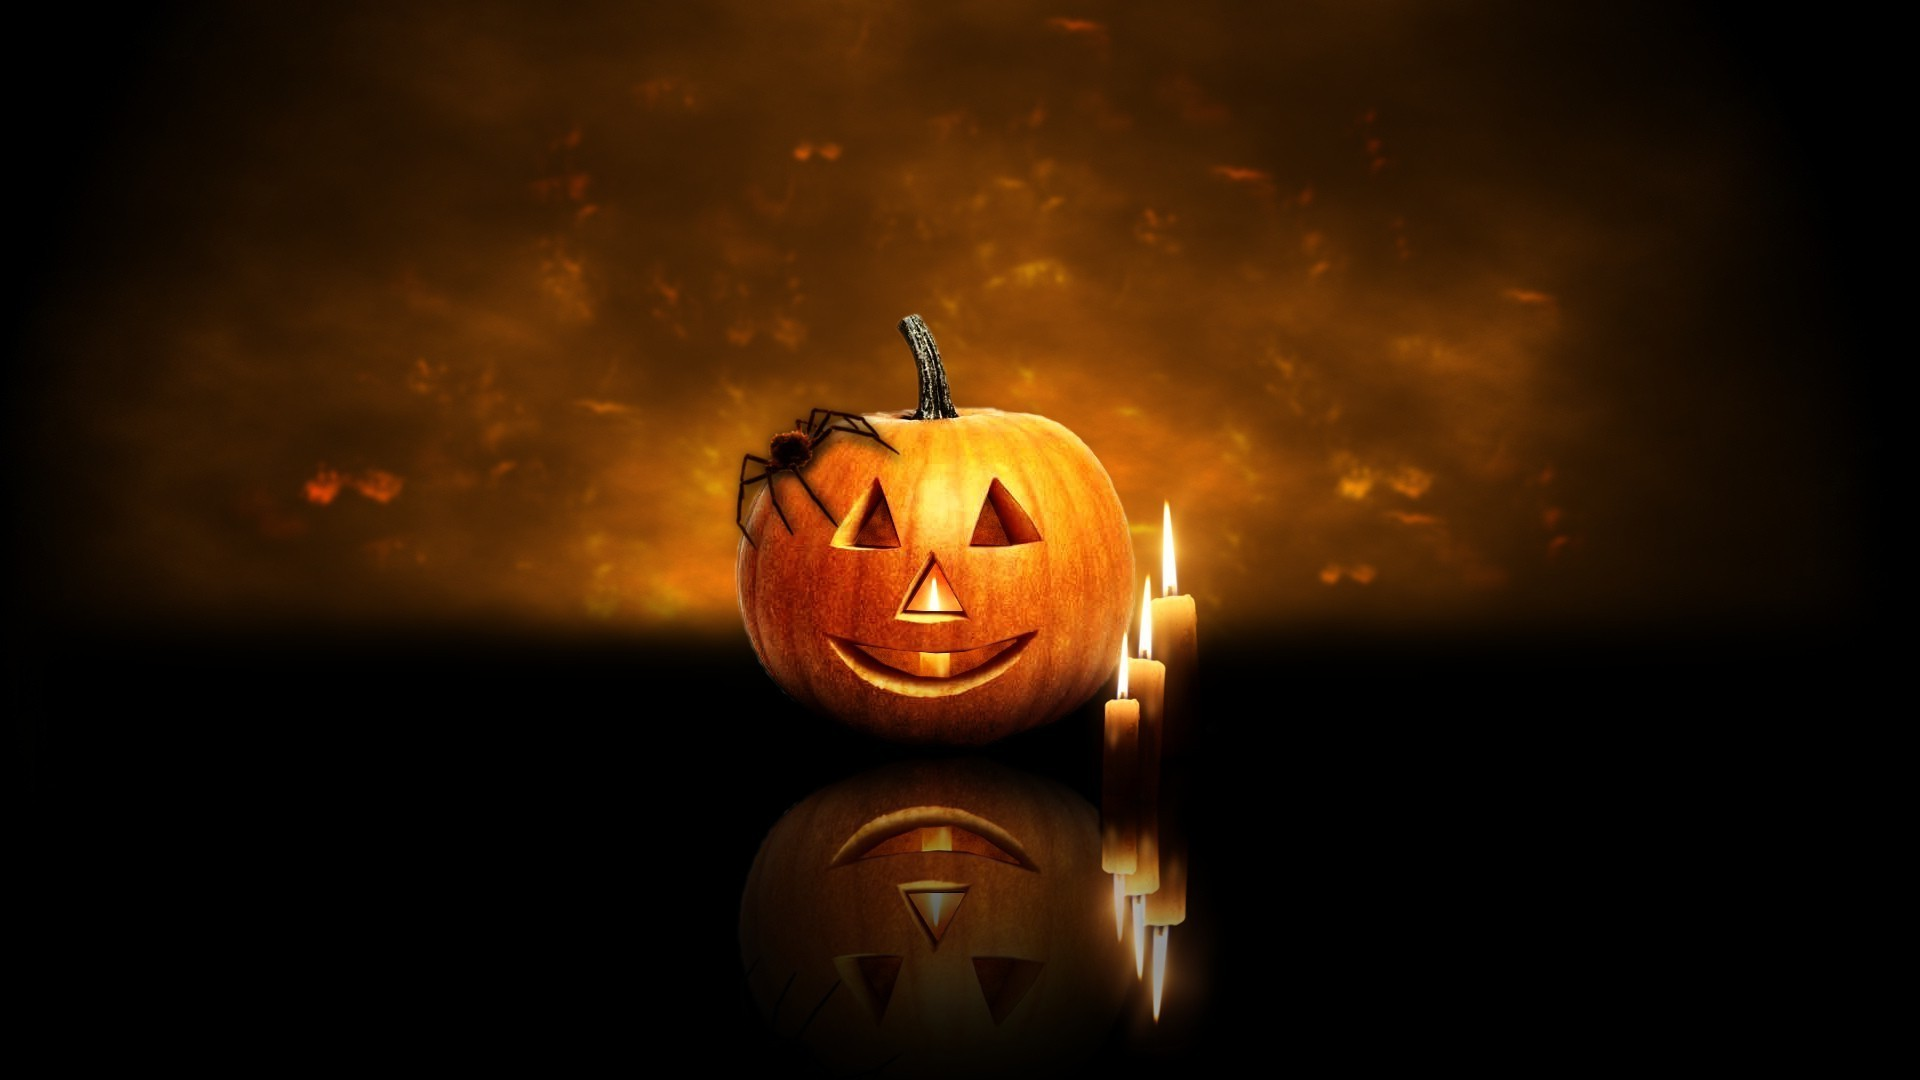 Animated Halloween Wallpapers With Music 63 Images